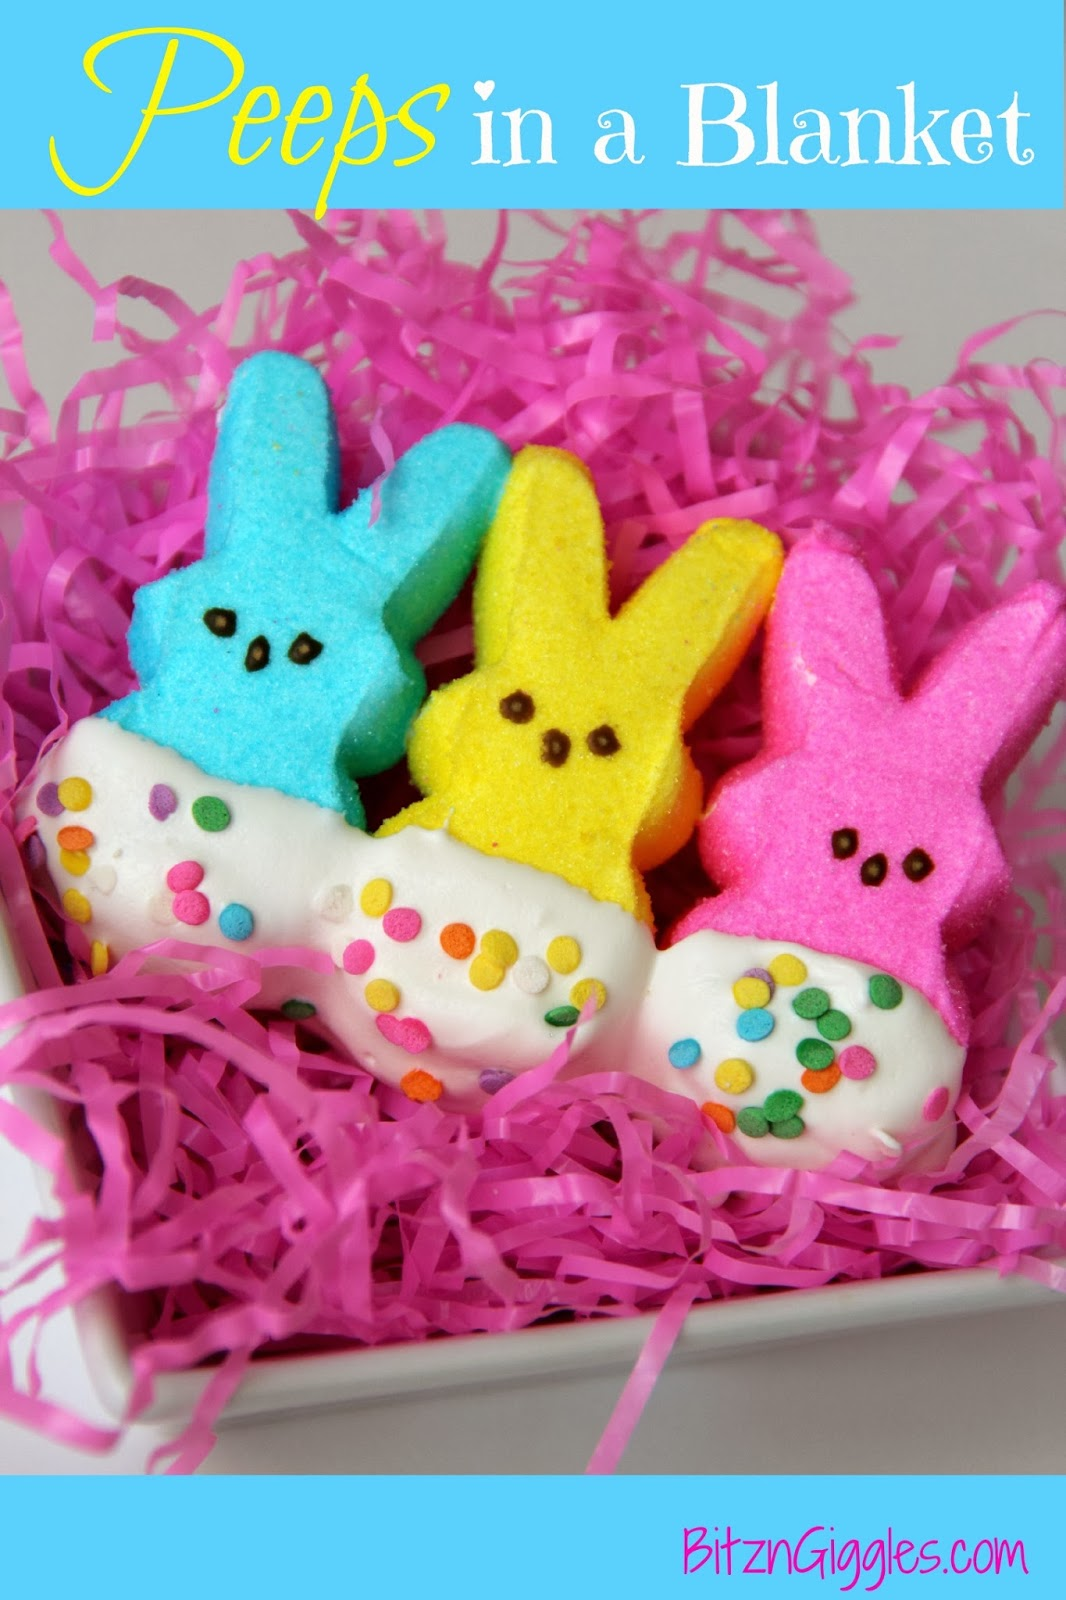 30 of the Best Easter Recipes & DIY Ideas - Roxy's Kitchen - Peeps in a Blanket